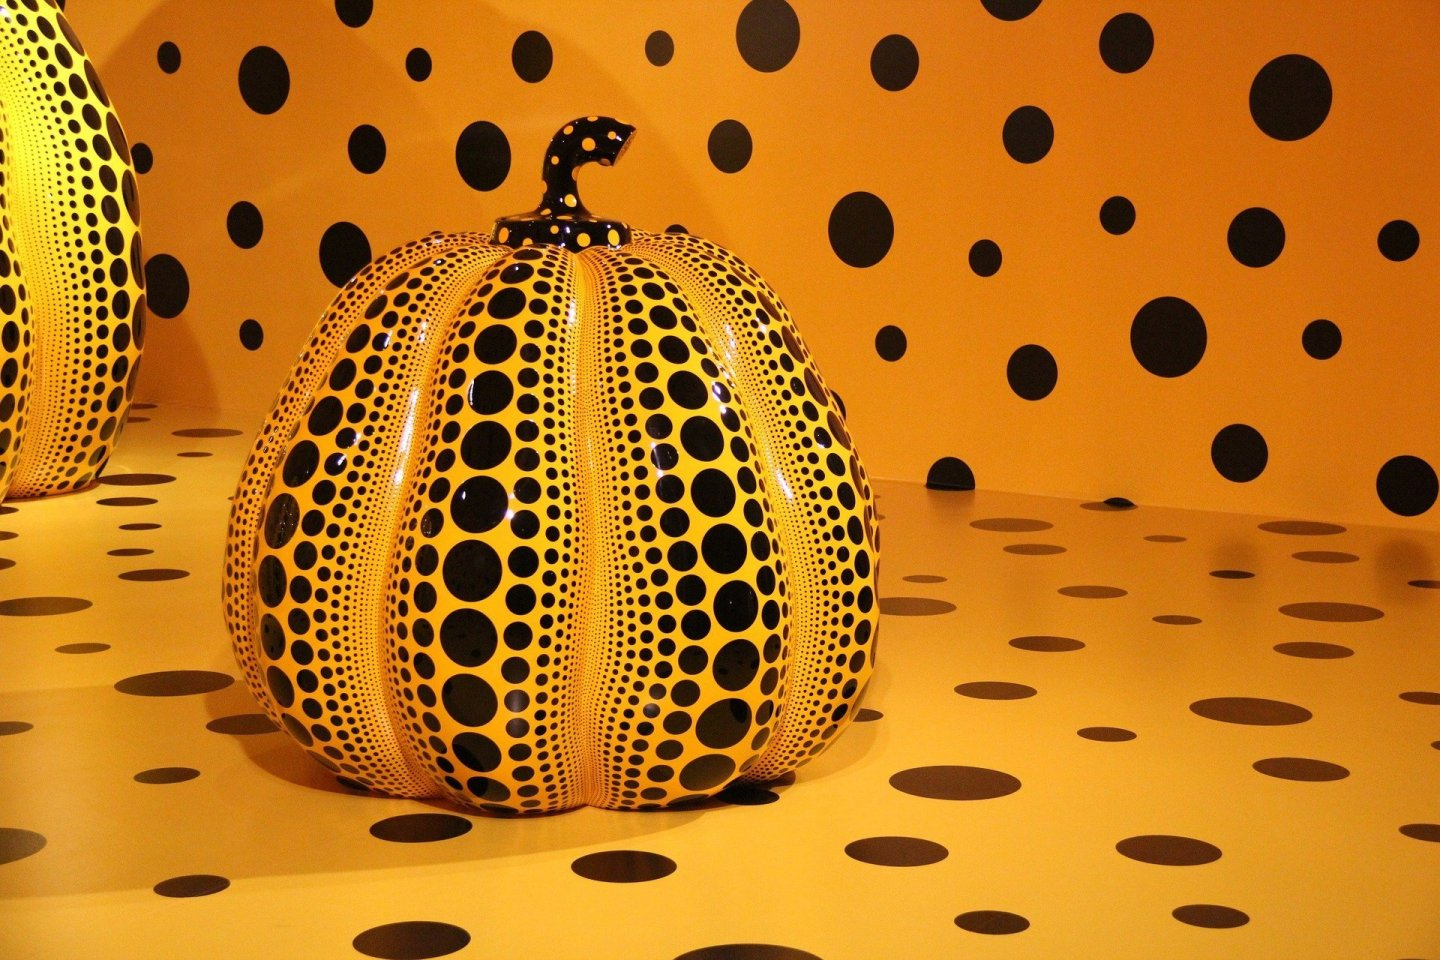 Kusama is known for a variety of works, including her signature polka-dot pieces